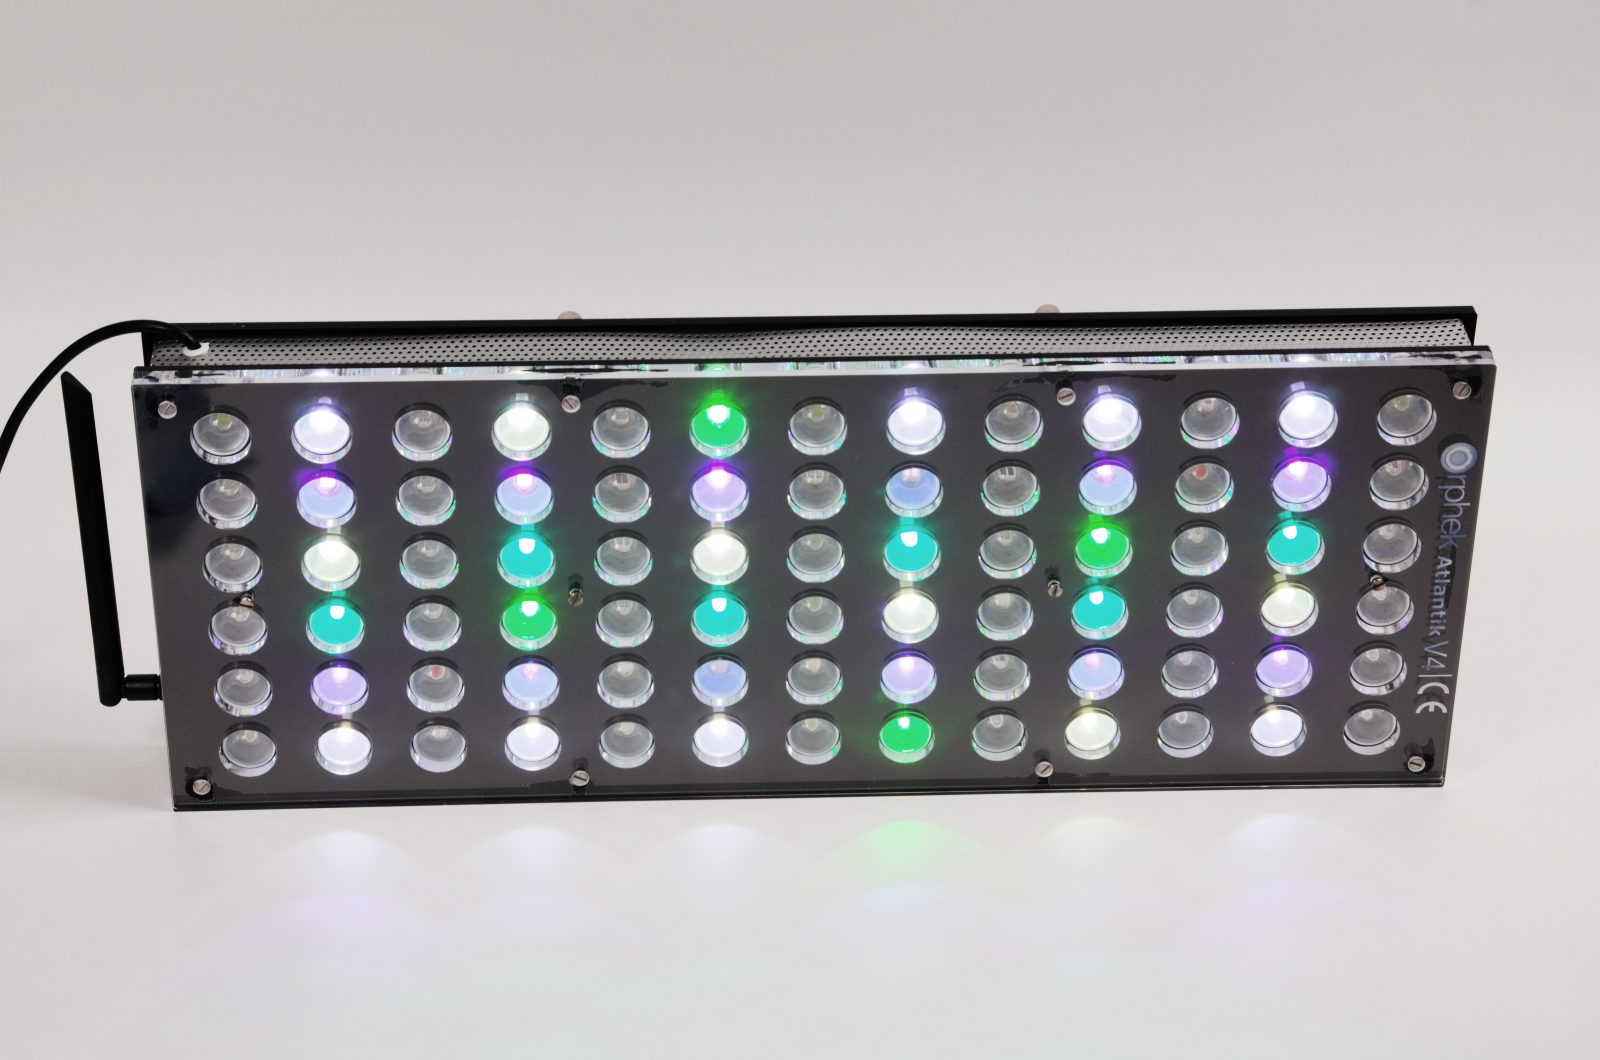 Orphek-Aquarium-LED-Lighting-Reef-Atlantic-V4-light-on-channel 1 + 3